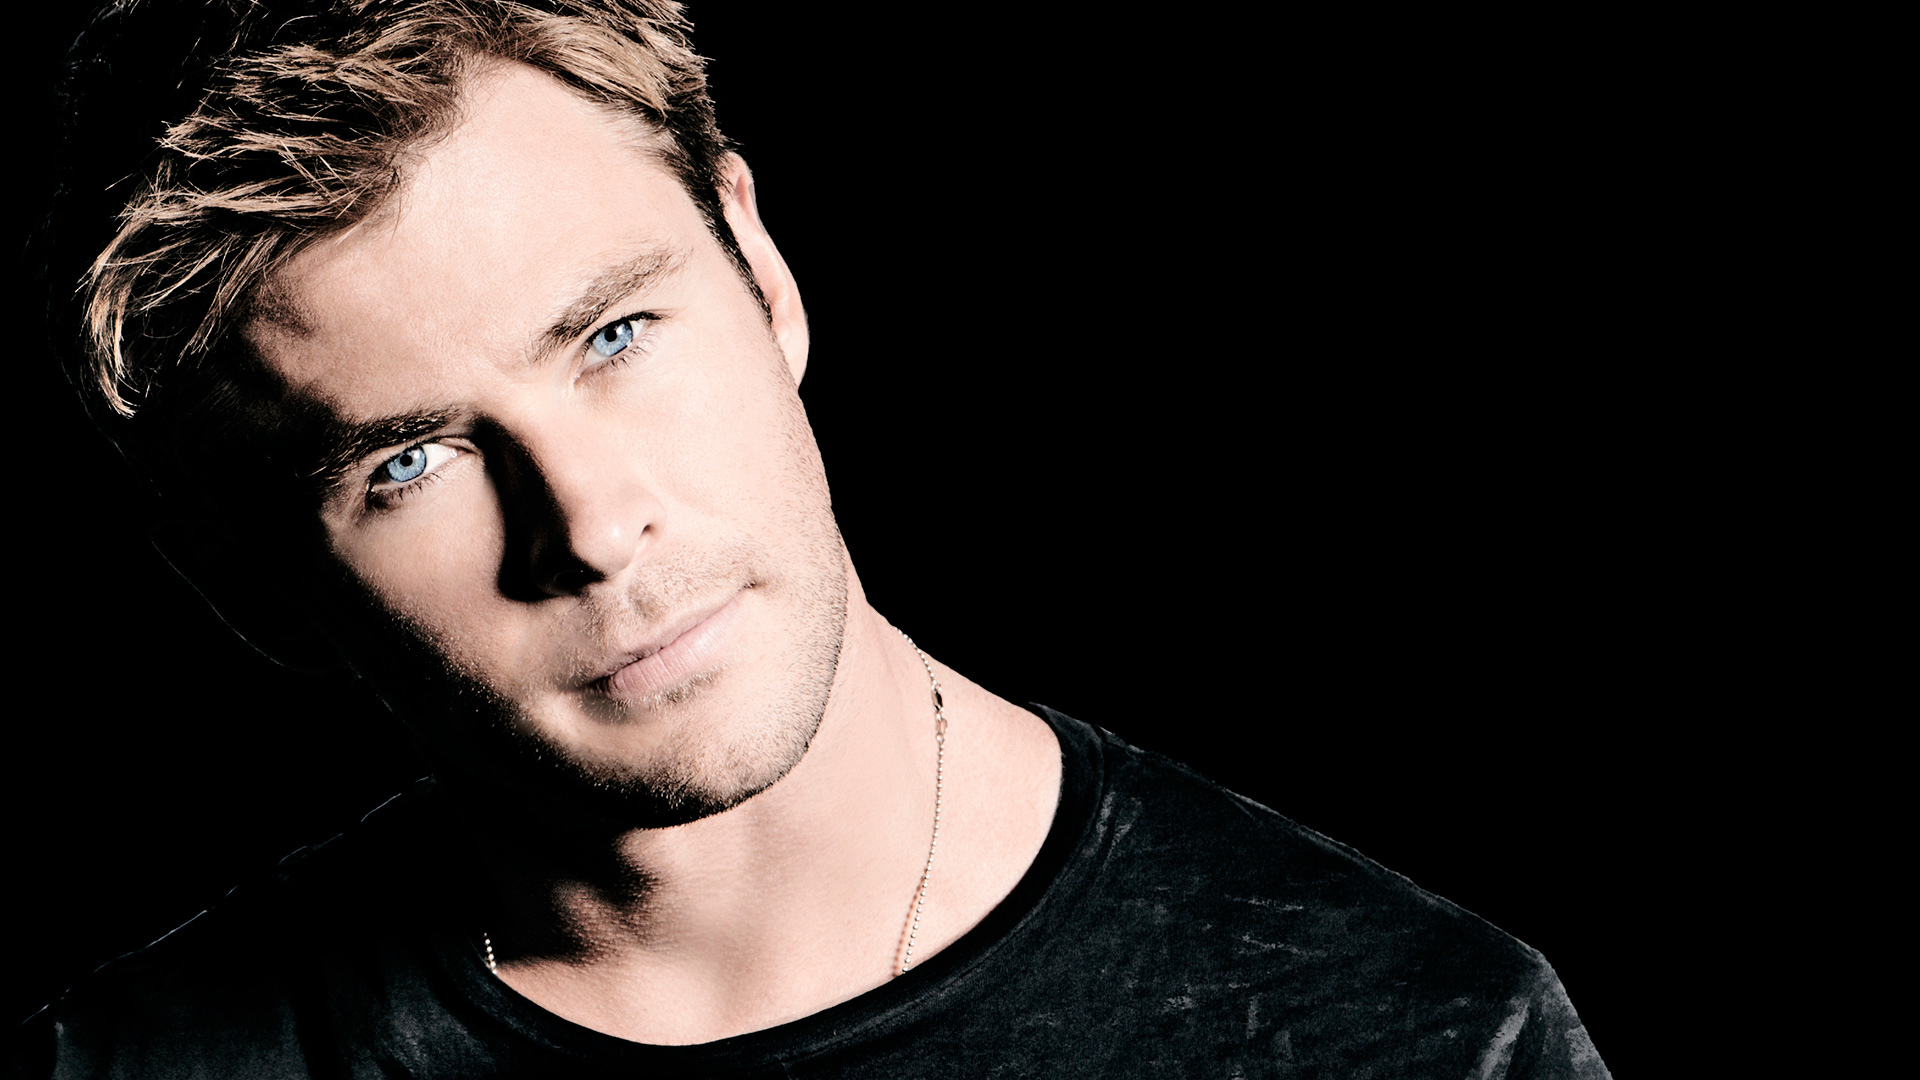 Chris hemsworth wallpapers high resolution and quality download - Chris hemsworth hd images ...